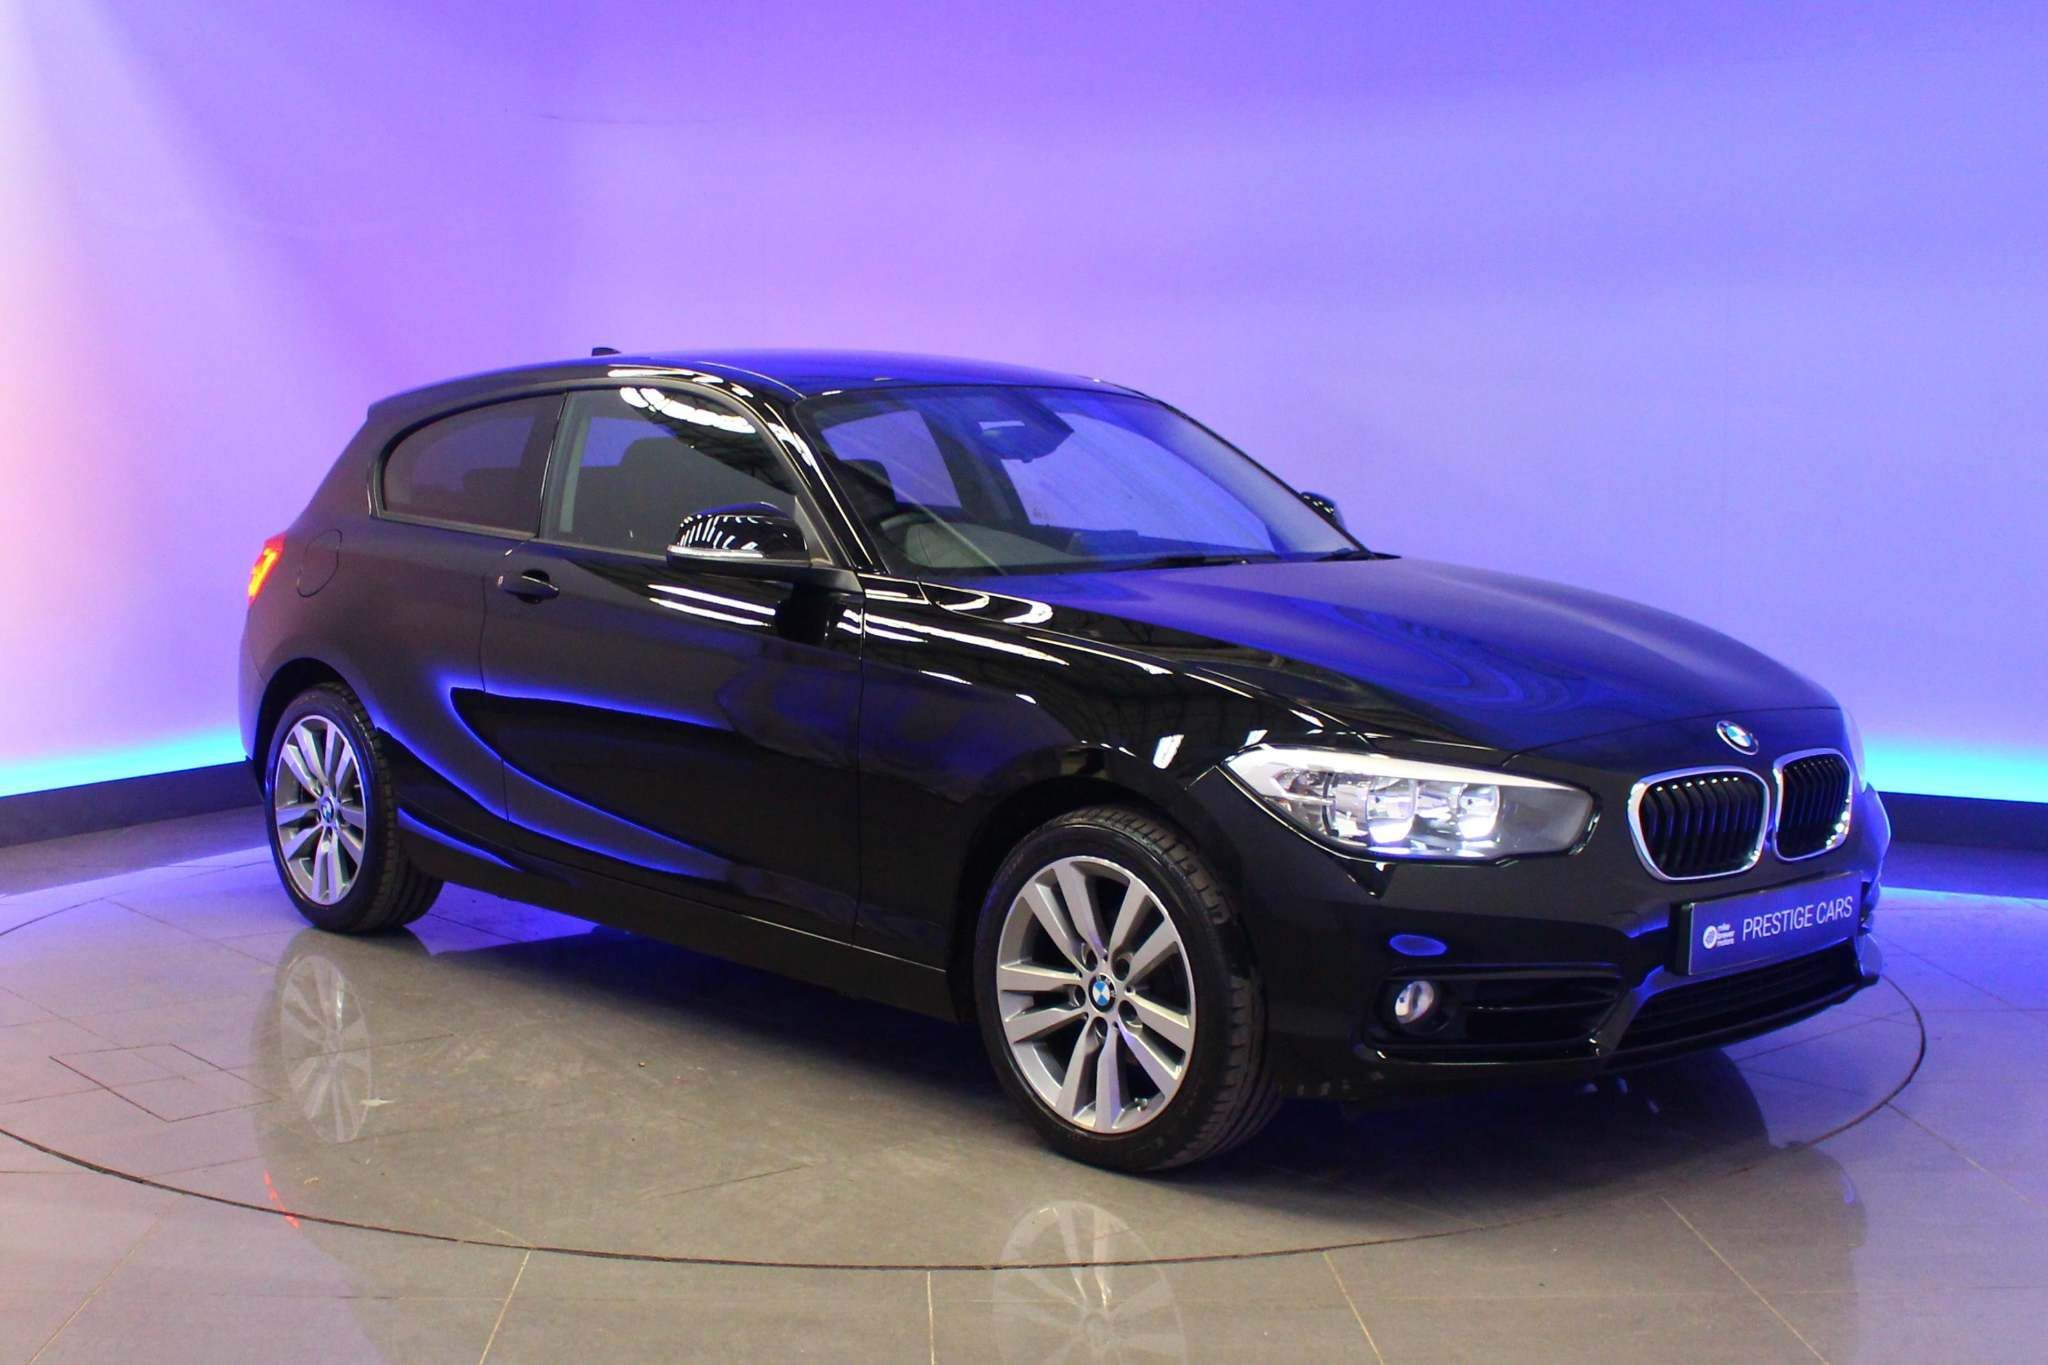 Used BMW 1 Series 1.5 118i Gpf Sport Sports Hatch (s/s) 3dr